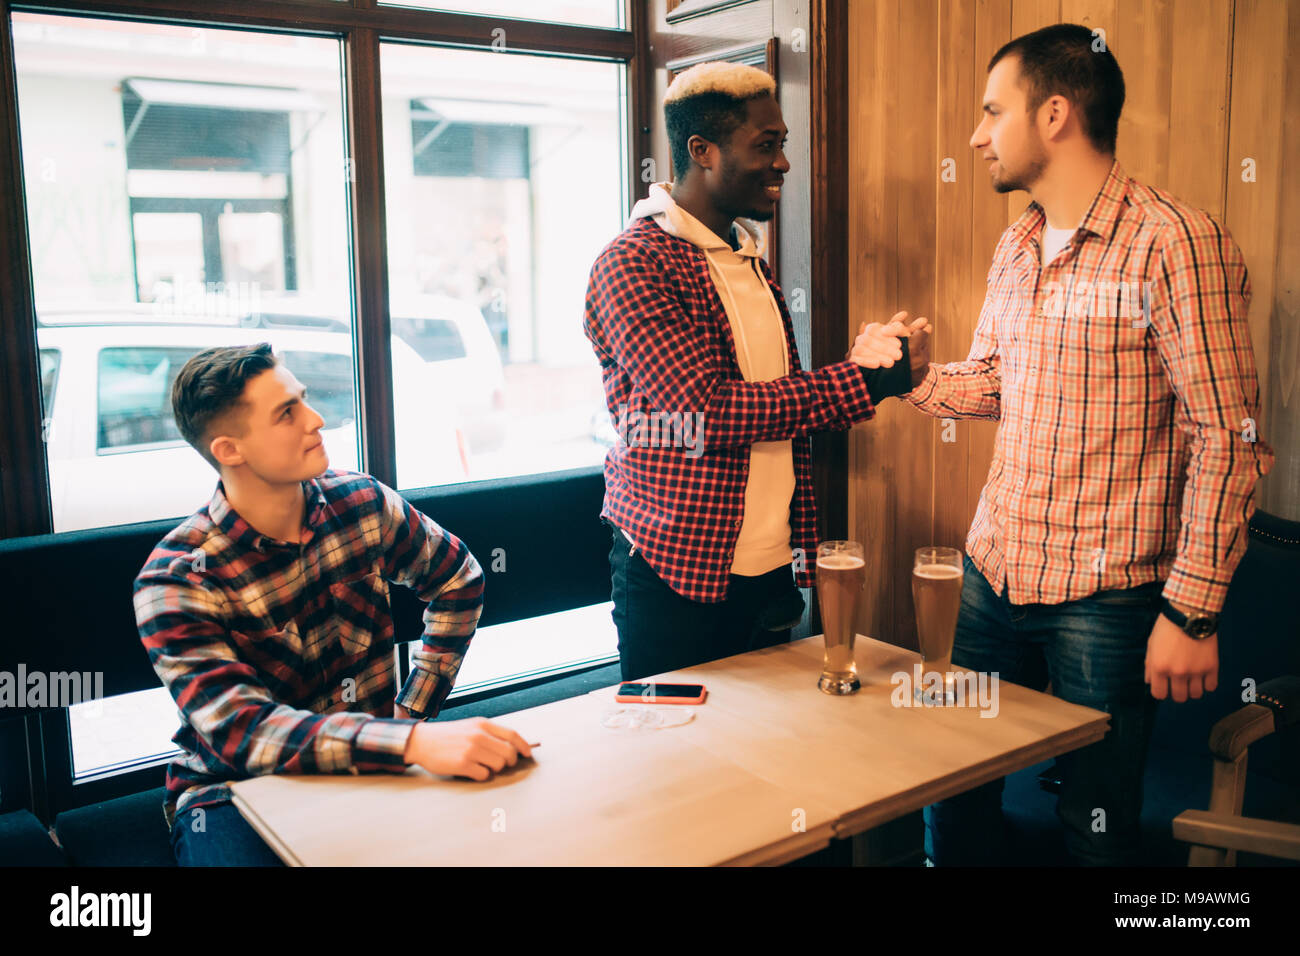 Happy to finally meet old male friends in bar. Shaking hands and smiling. - Stock Image